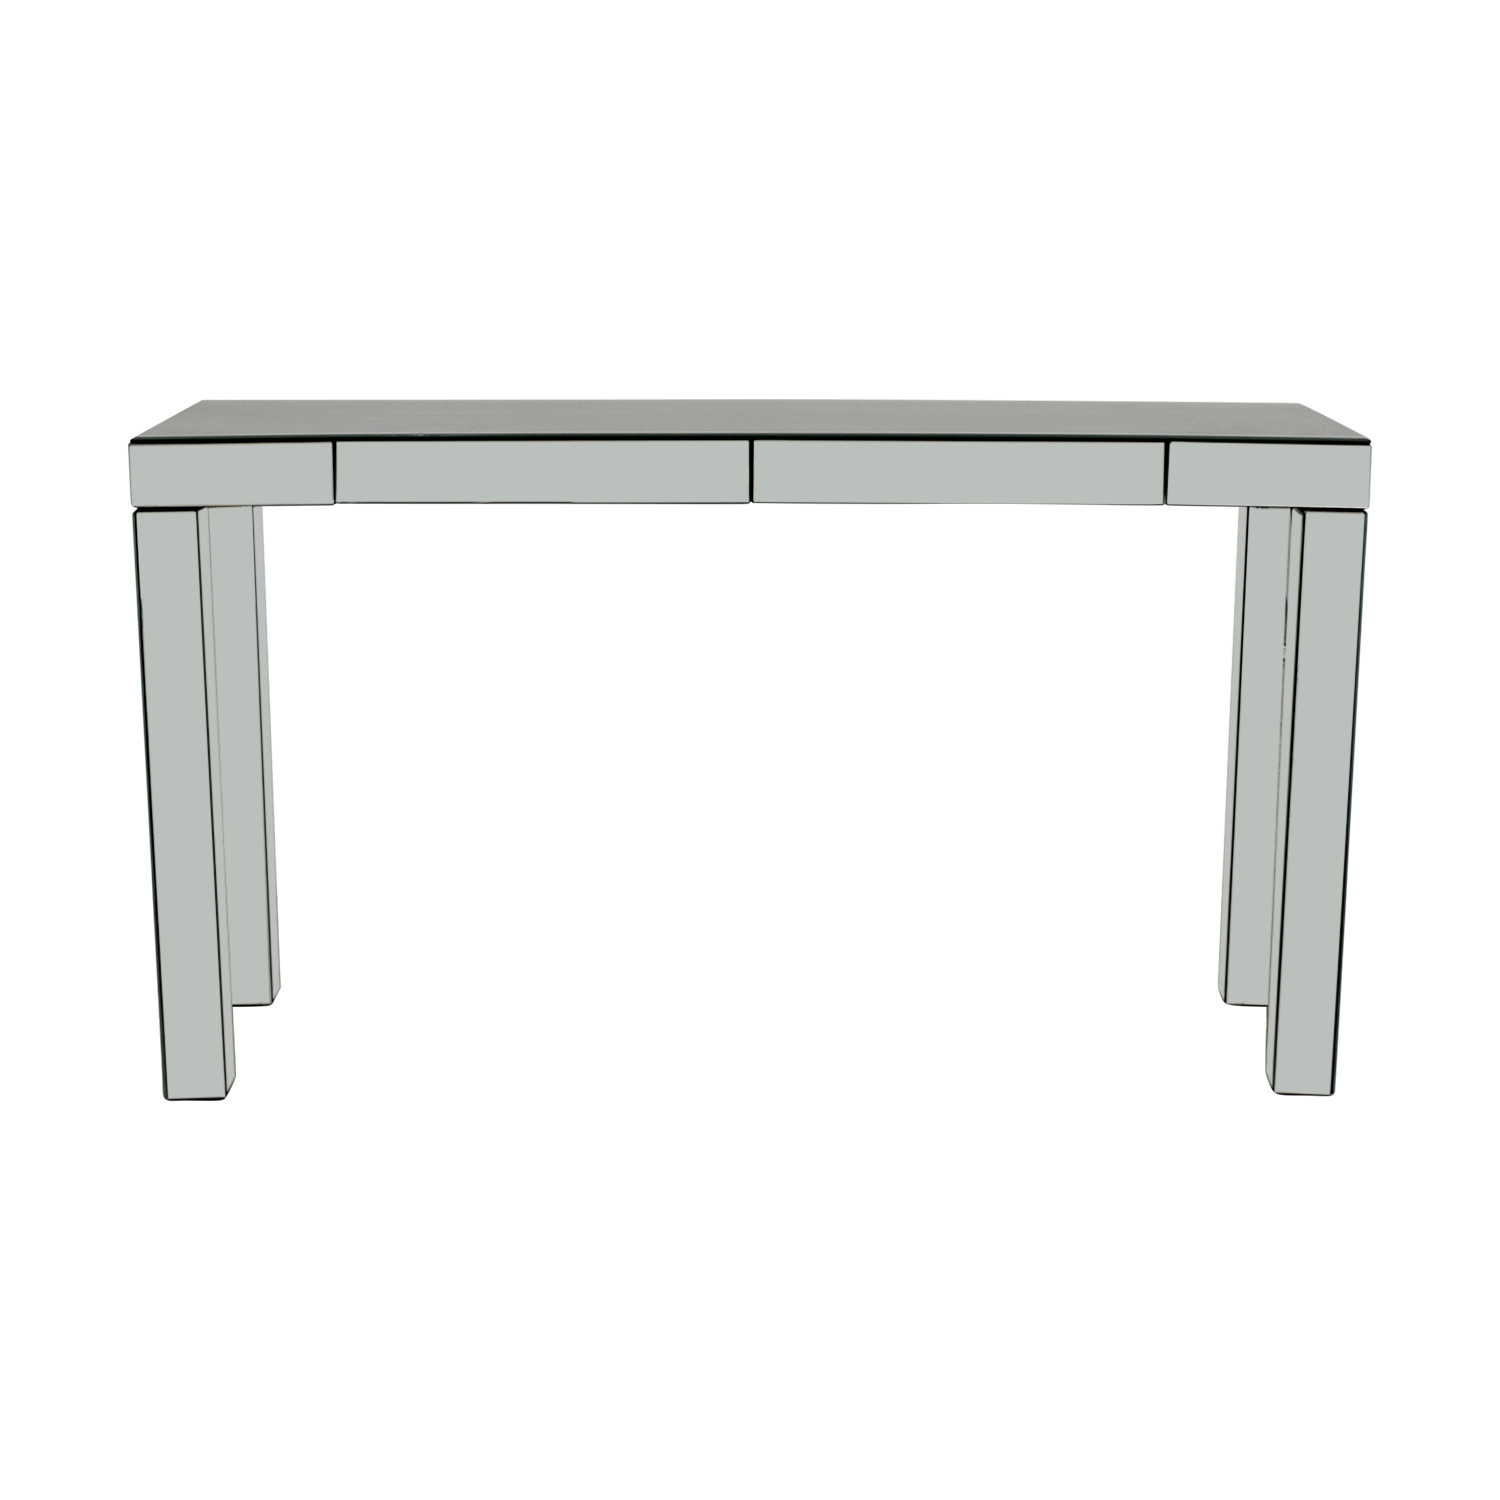 West Elm West Elm Parsons Mirrored Console discount